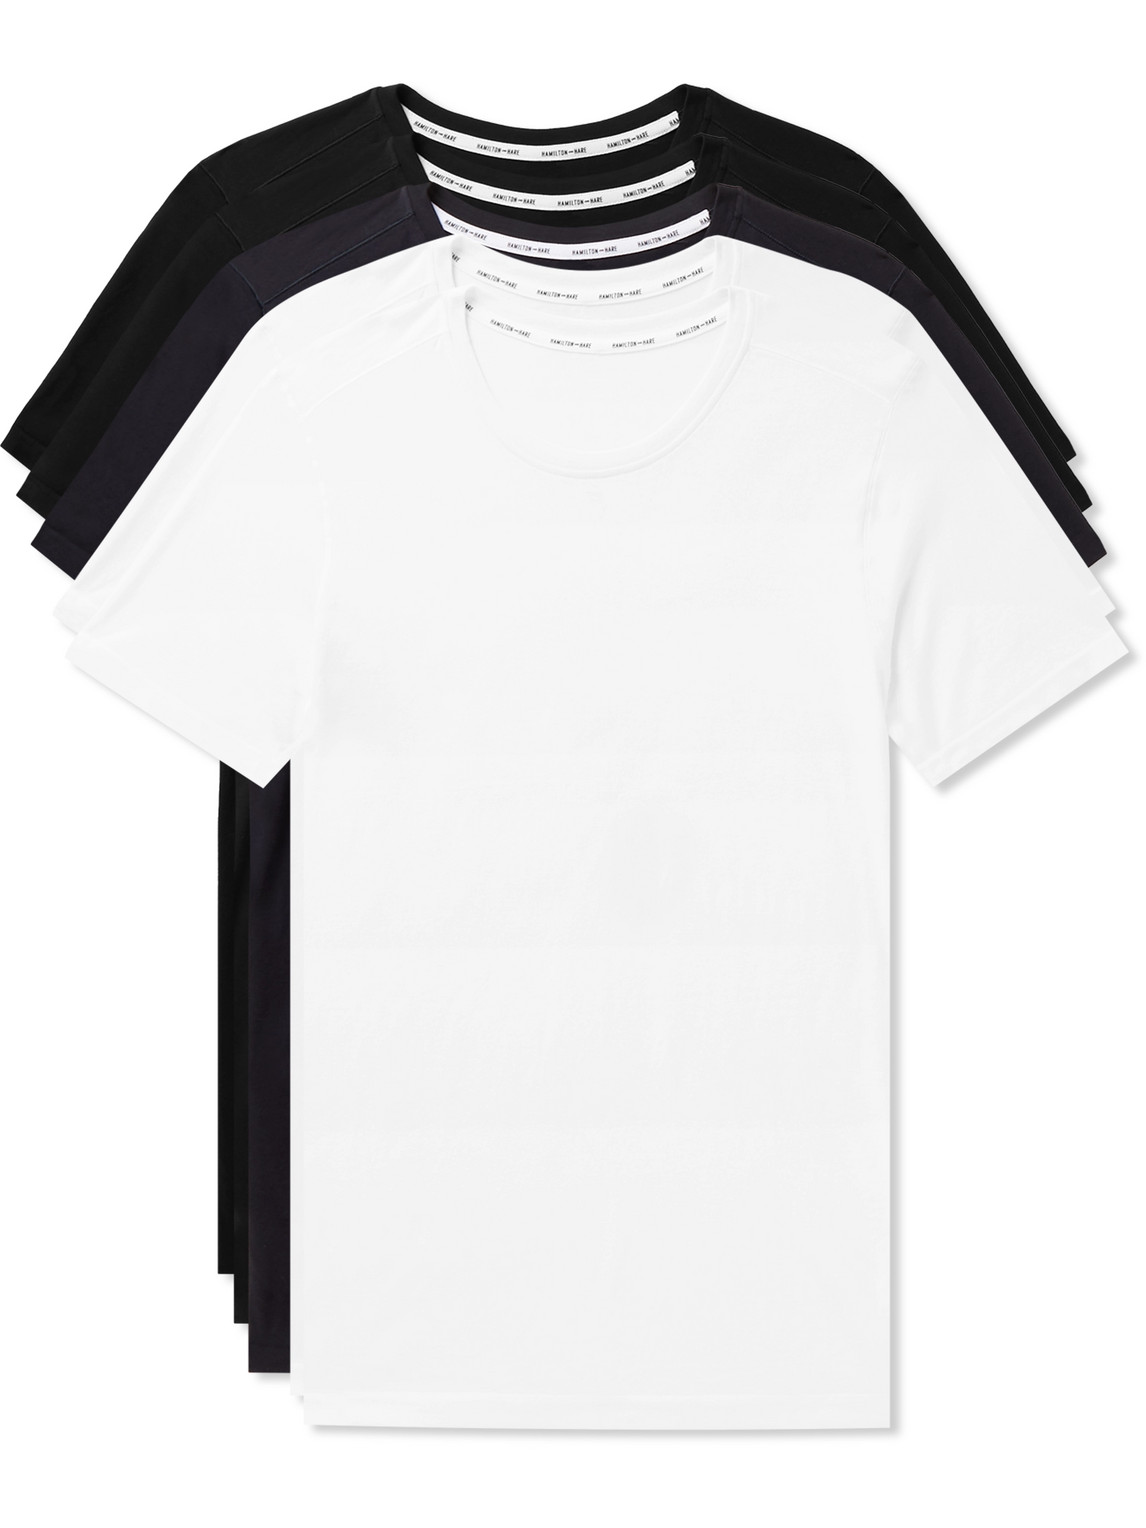 Hamilton And Hare Five-pack Slim-fit Seamless Cotton-jersey T-shirts In Multi